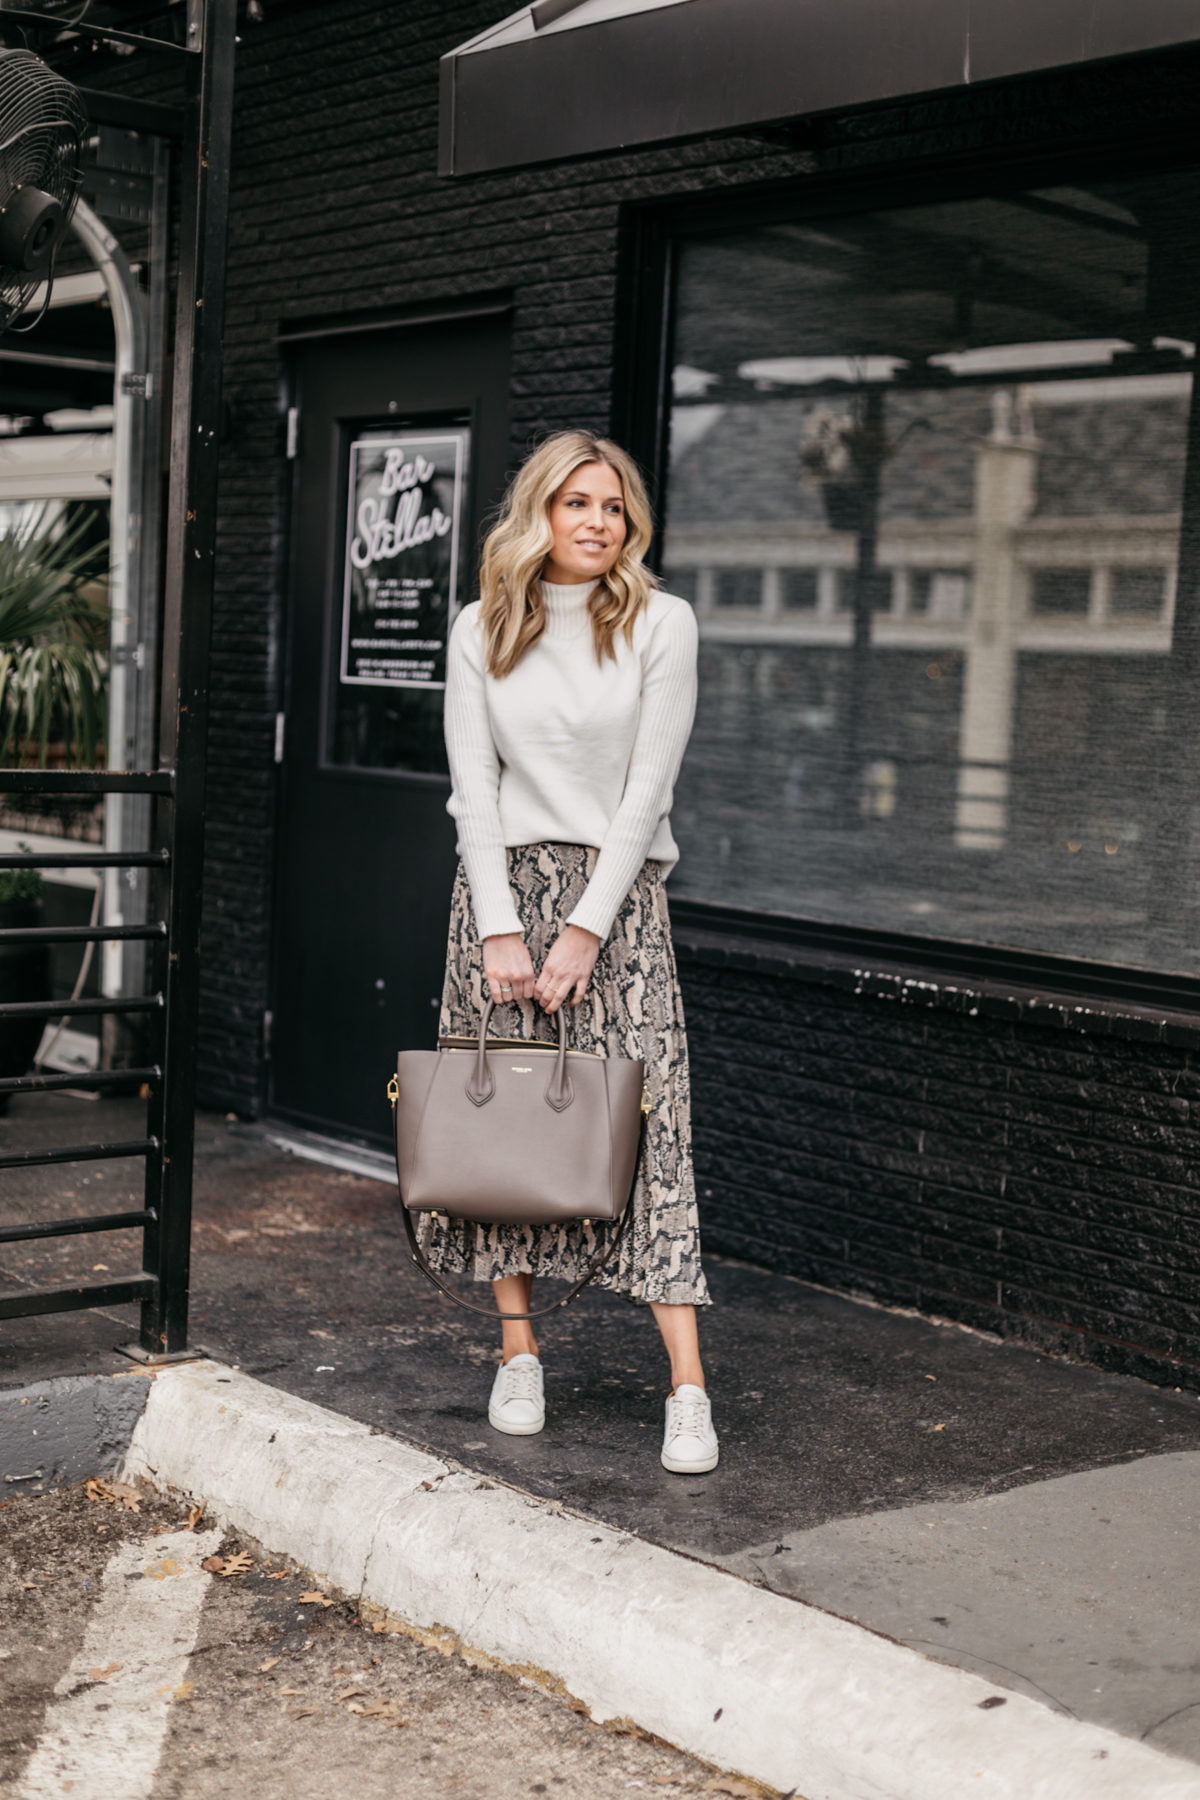 Leopard Skirt // Cream Mock Neck Sweater // White Sneakers